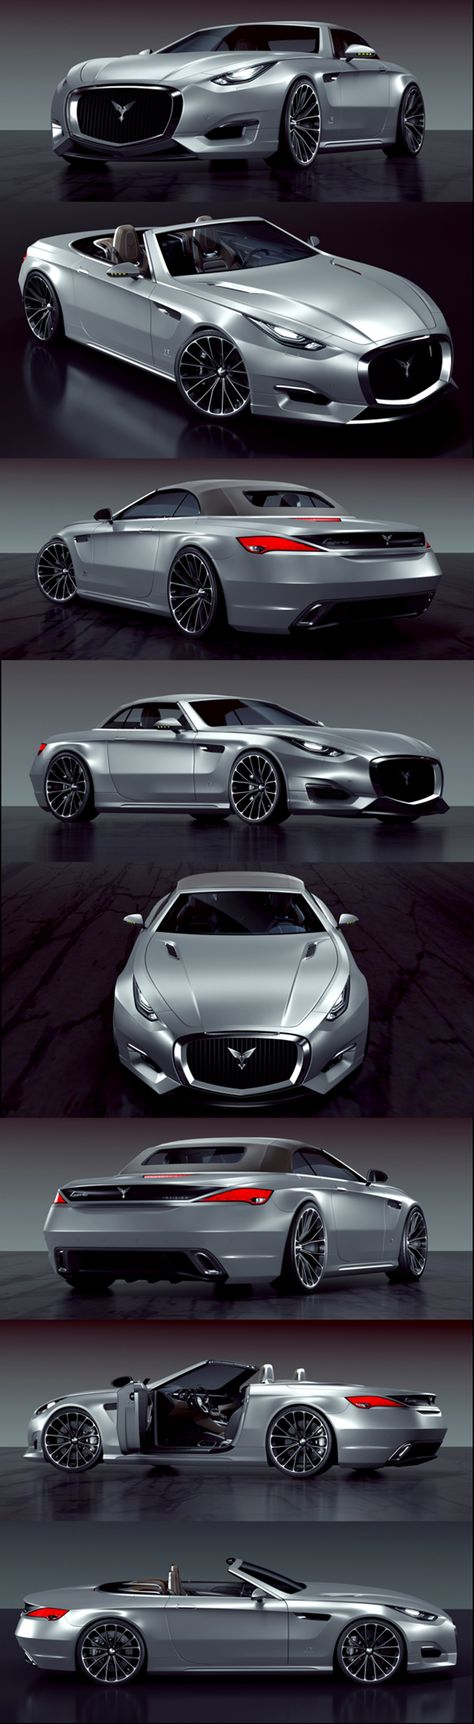 Luxury caravan with full size sports car garage from futuria - Car Concept Images On Pinterest Cars Car And Car Photos